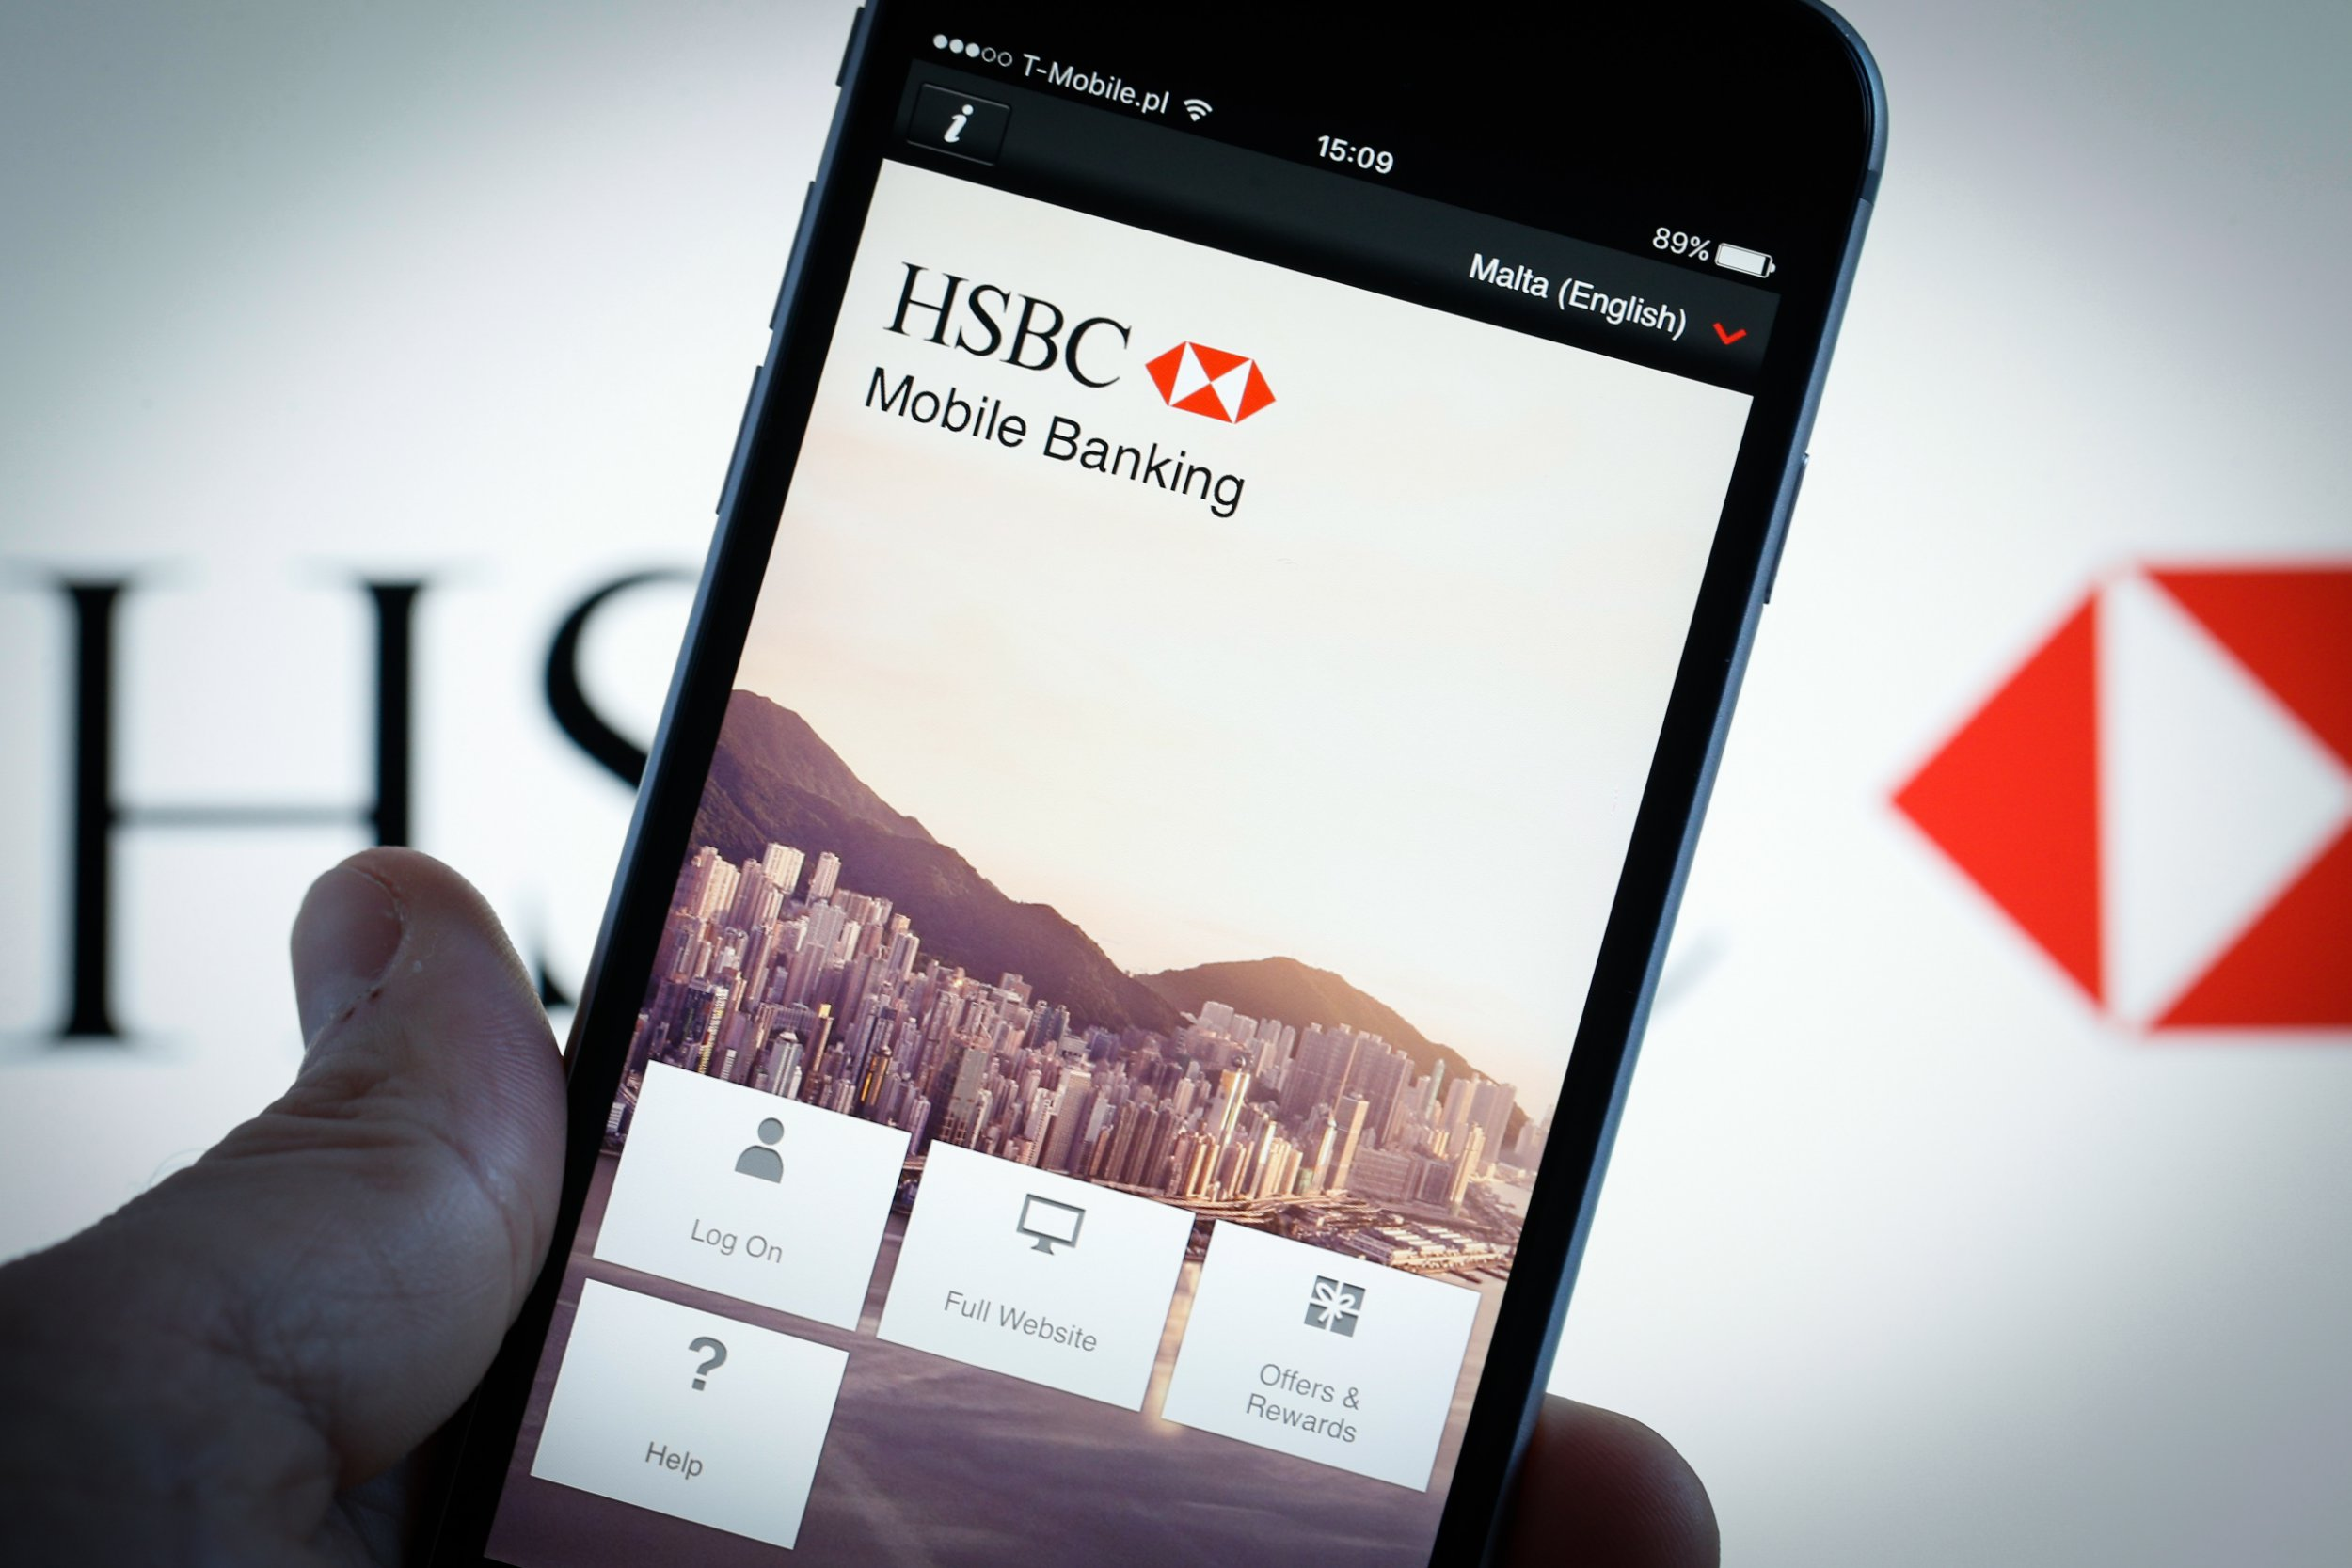 The smartphone app for HSBC banking is seen on 1 March, 2017, in Bydgoszcz, Poland. Earlier HSBC aknowledged it has been having issues with its online banking system and users have not been able to log on. (Photo by Jaap Arriens/NurPhoto via Getty Images)